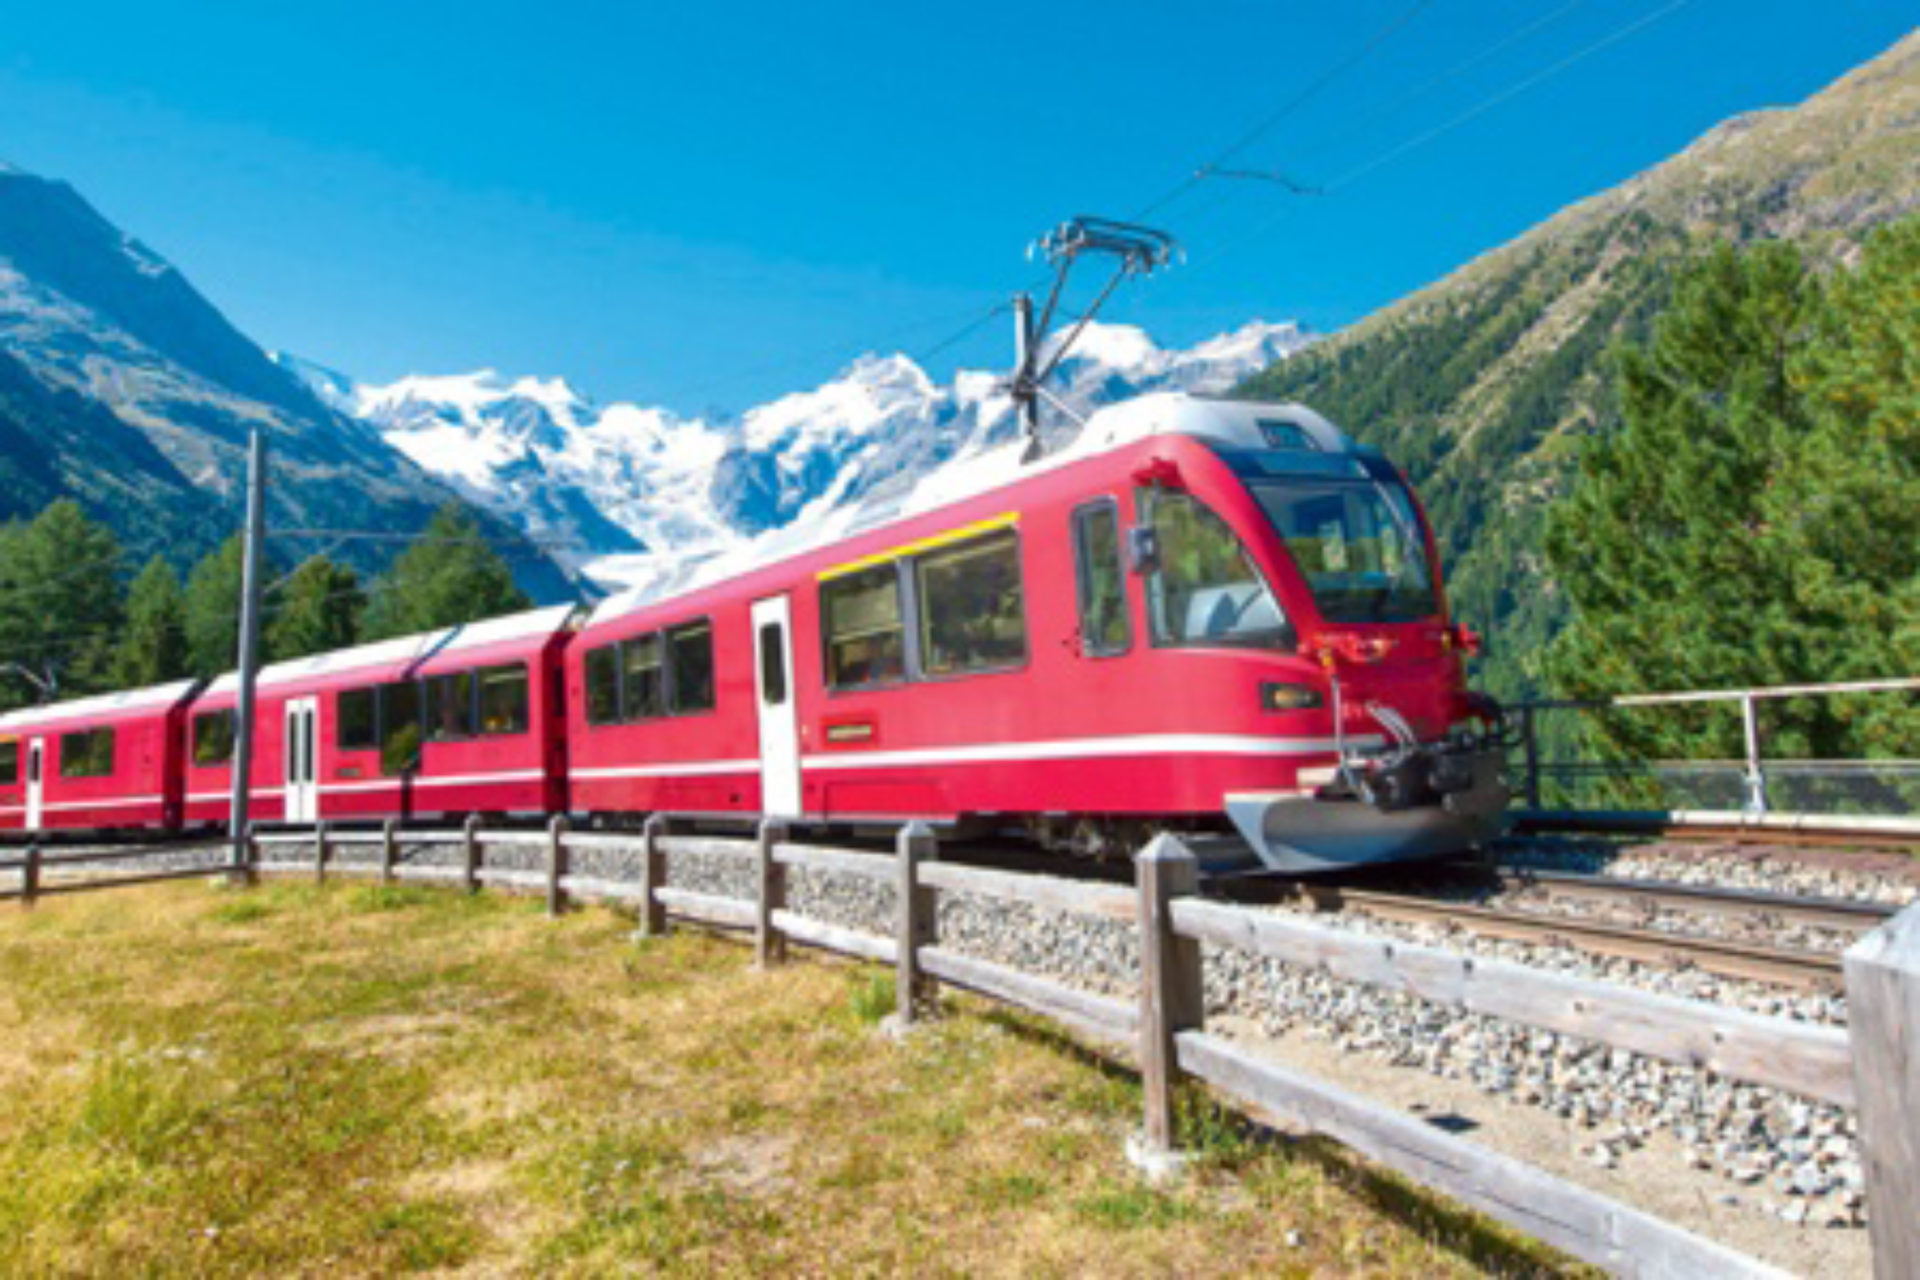 Suisse Train de Légende